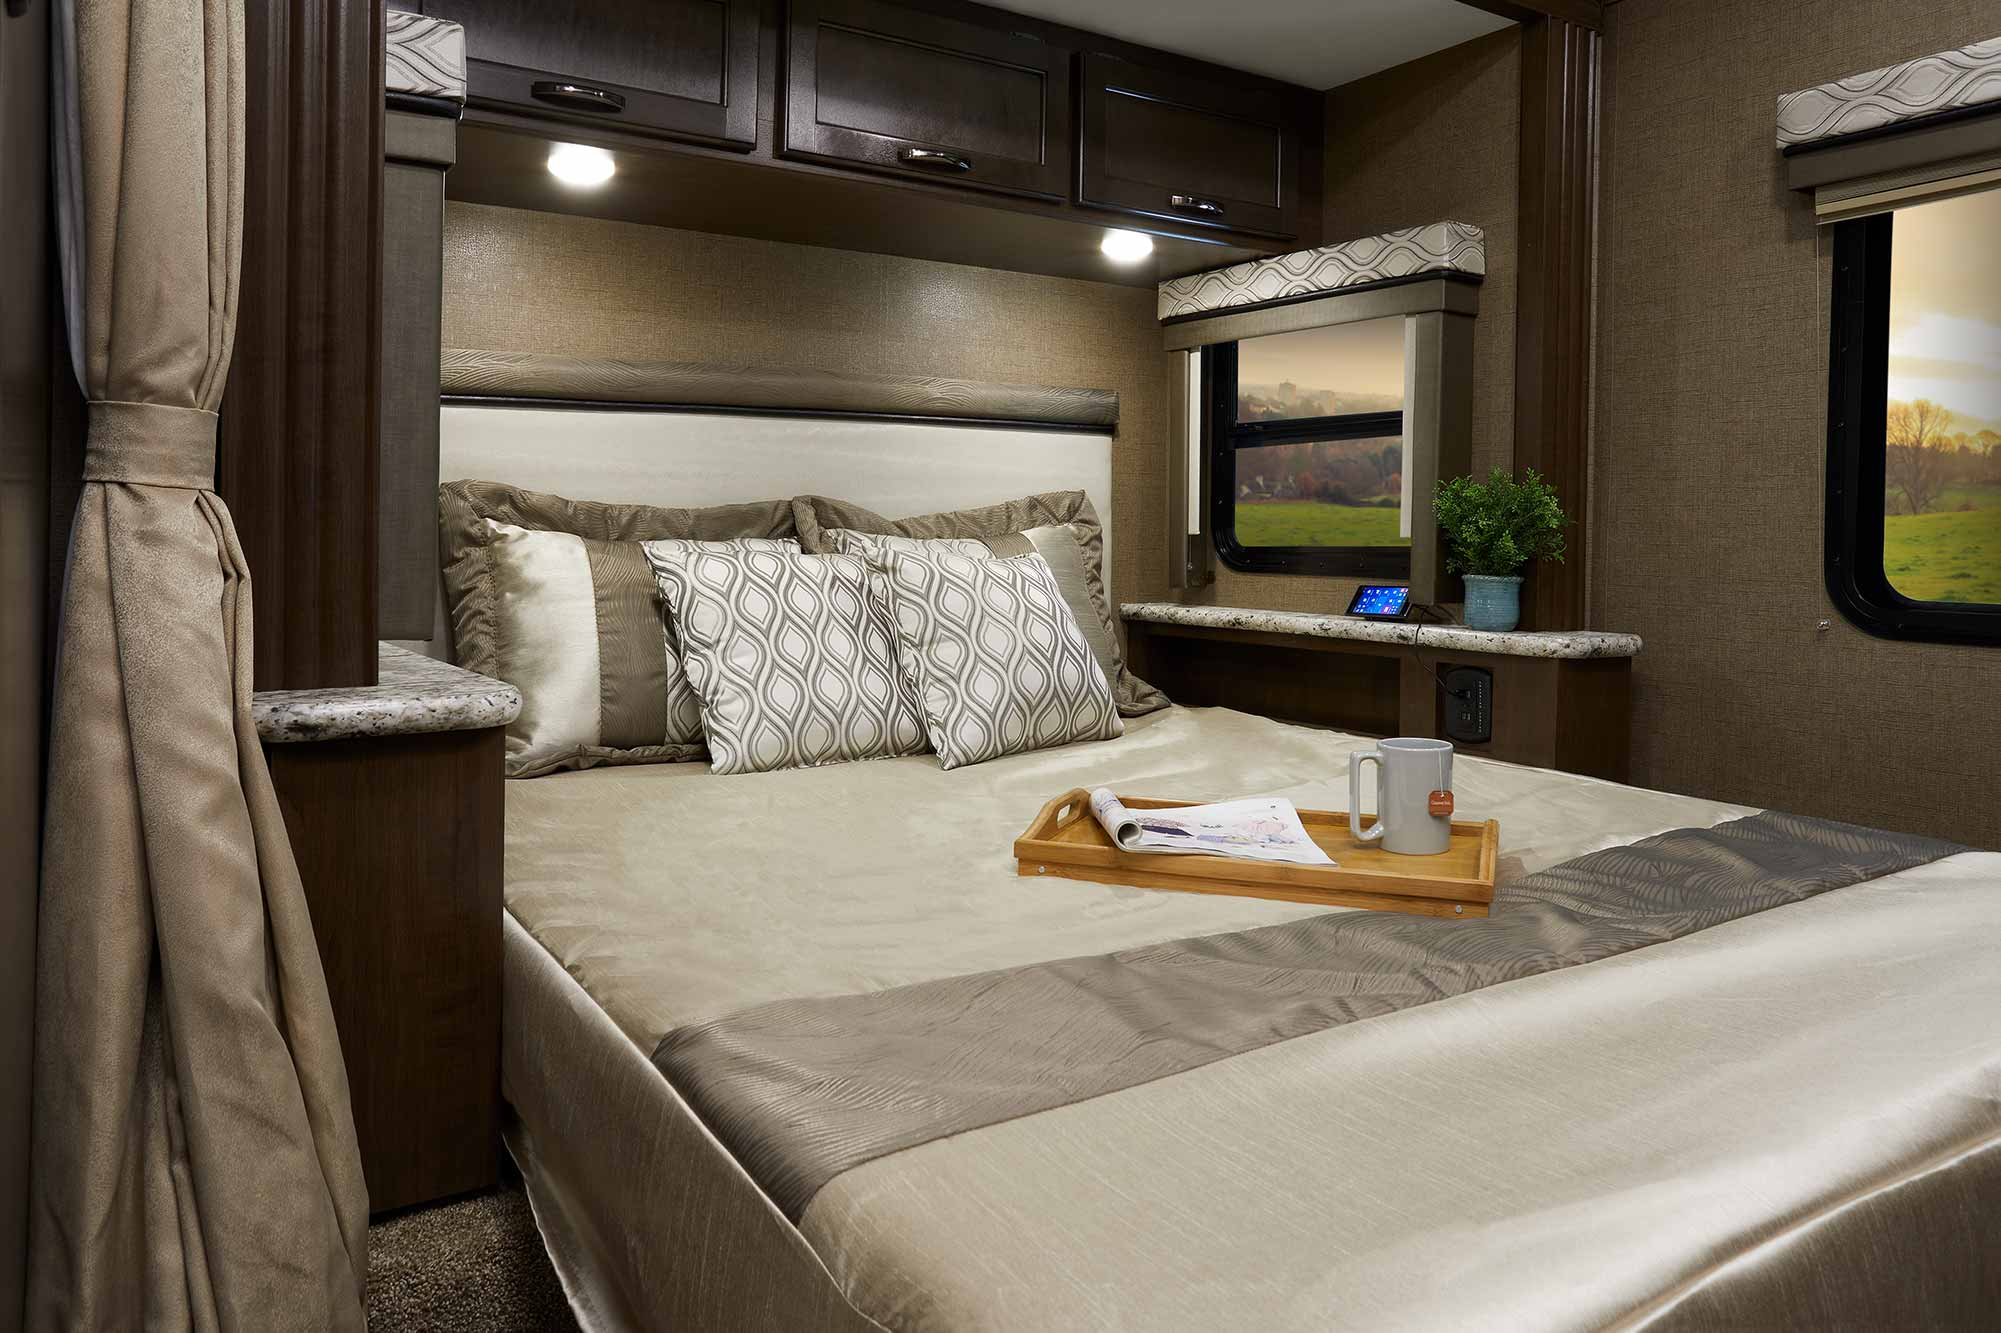 Freedom Bed Head Freedom Traveler Motorhomes By Thor Motor Coach